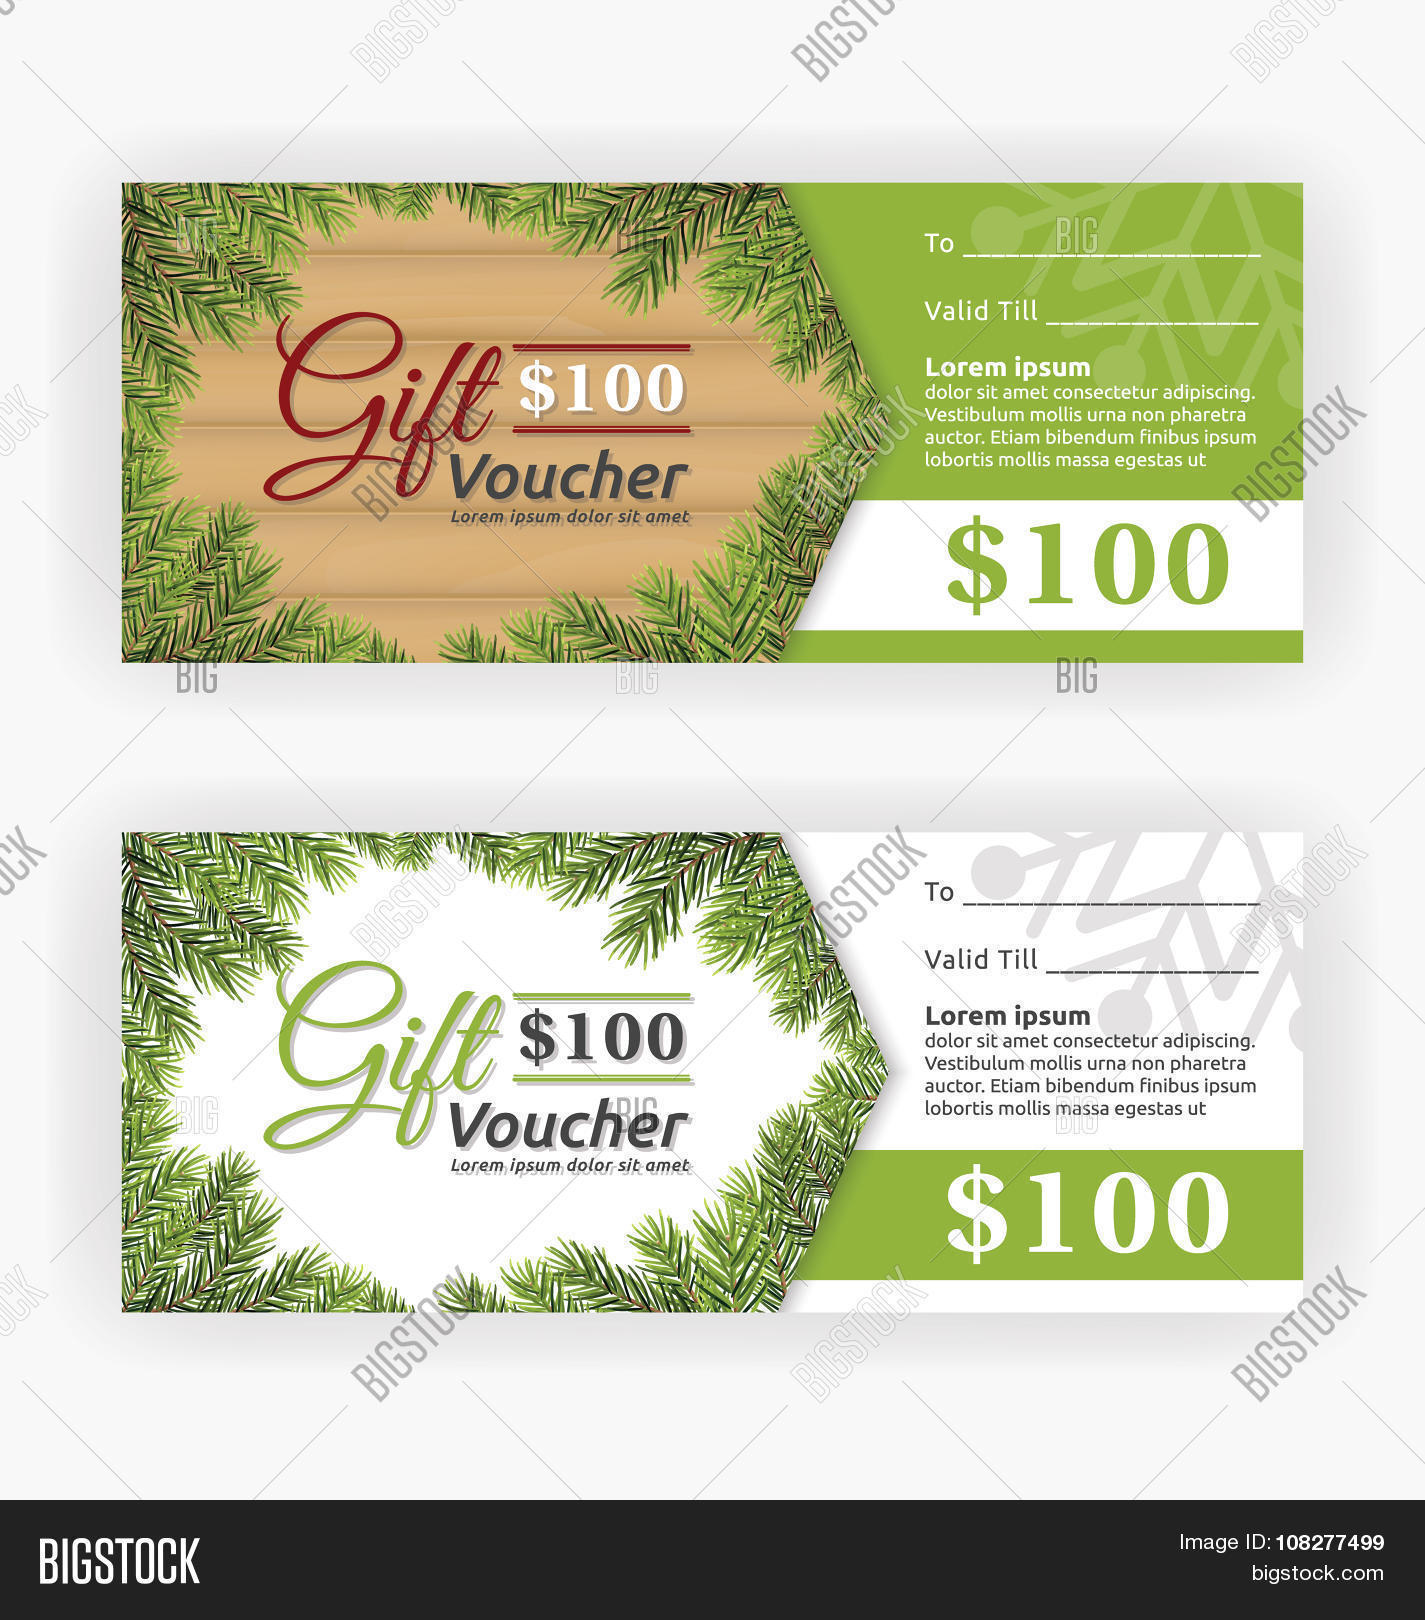 christmas leaves border theme gift voucher template stock vector christmas leaves border theme gift voucher template